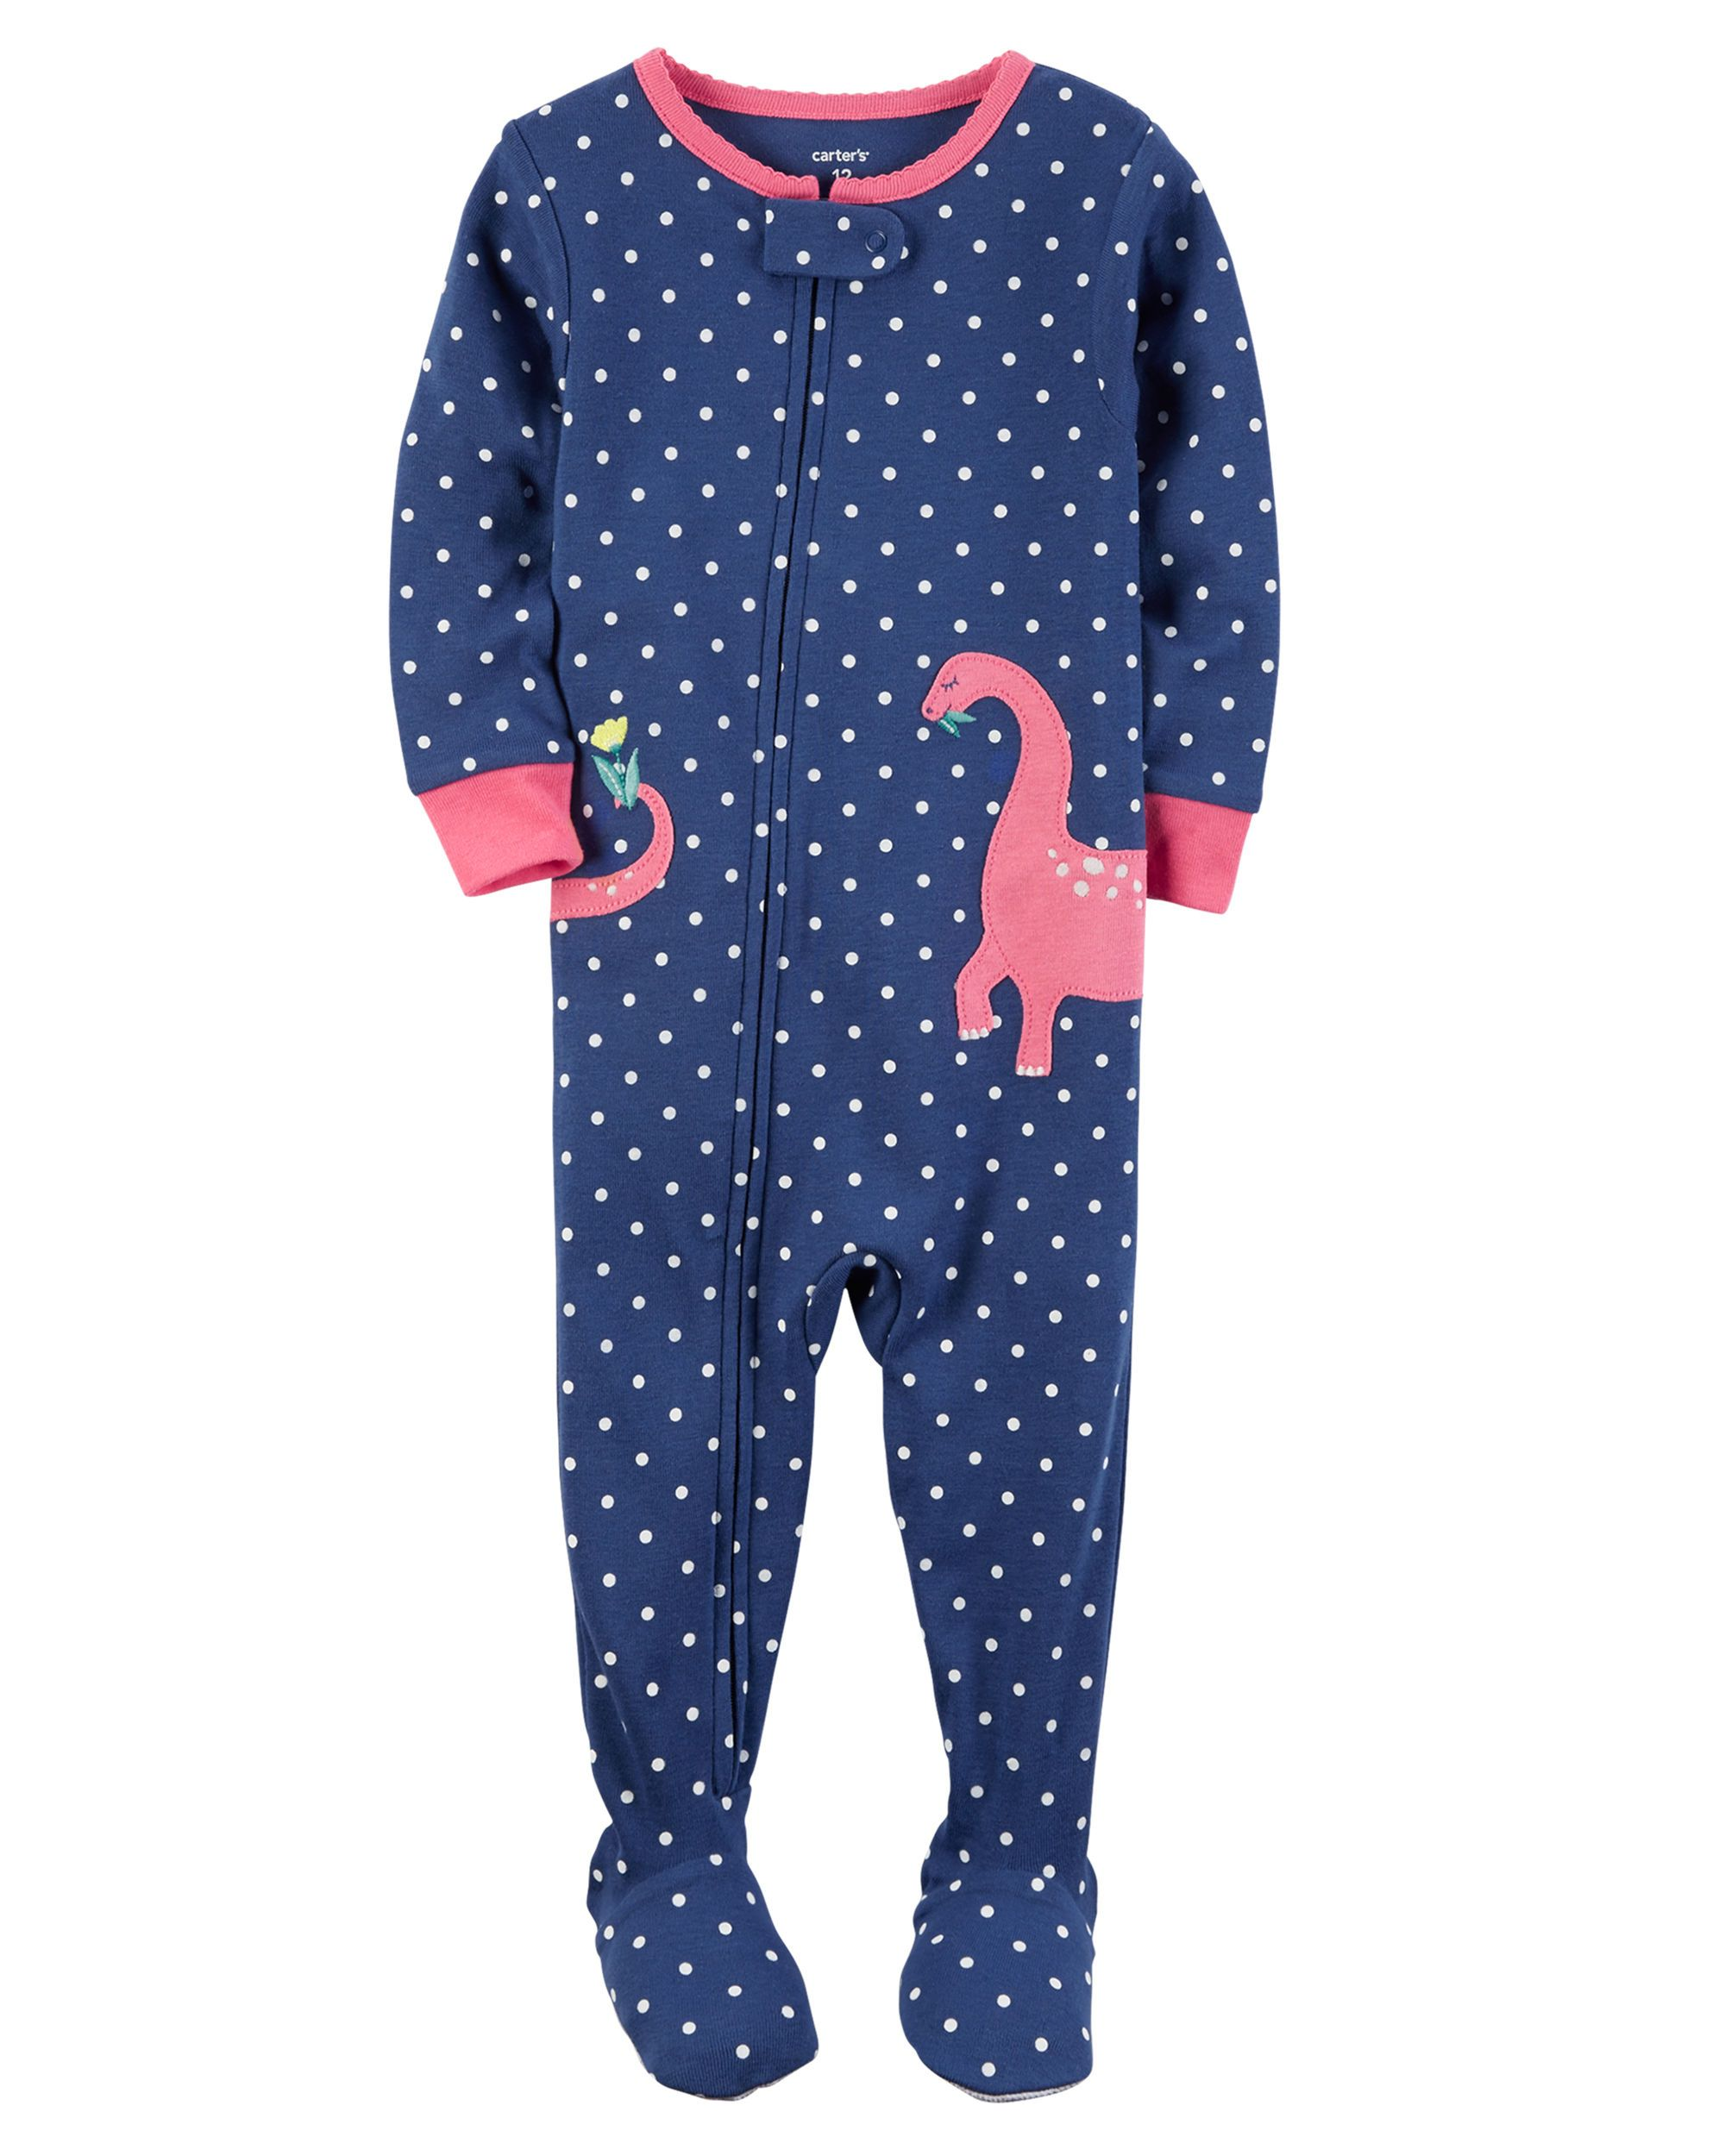 286973c8f Baby Girl 1-Piece Snug Fit Cotton PJs